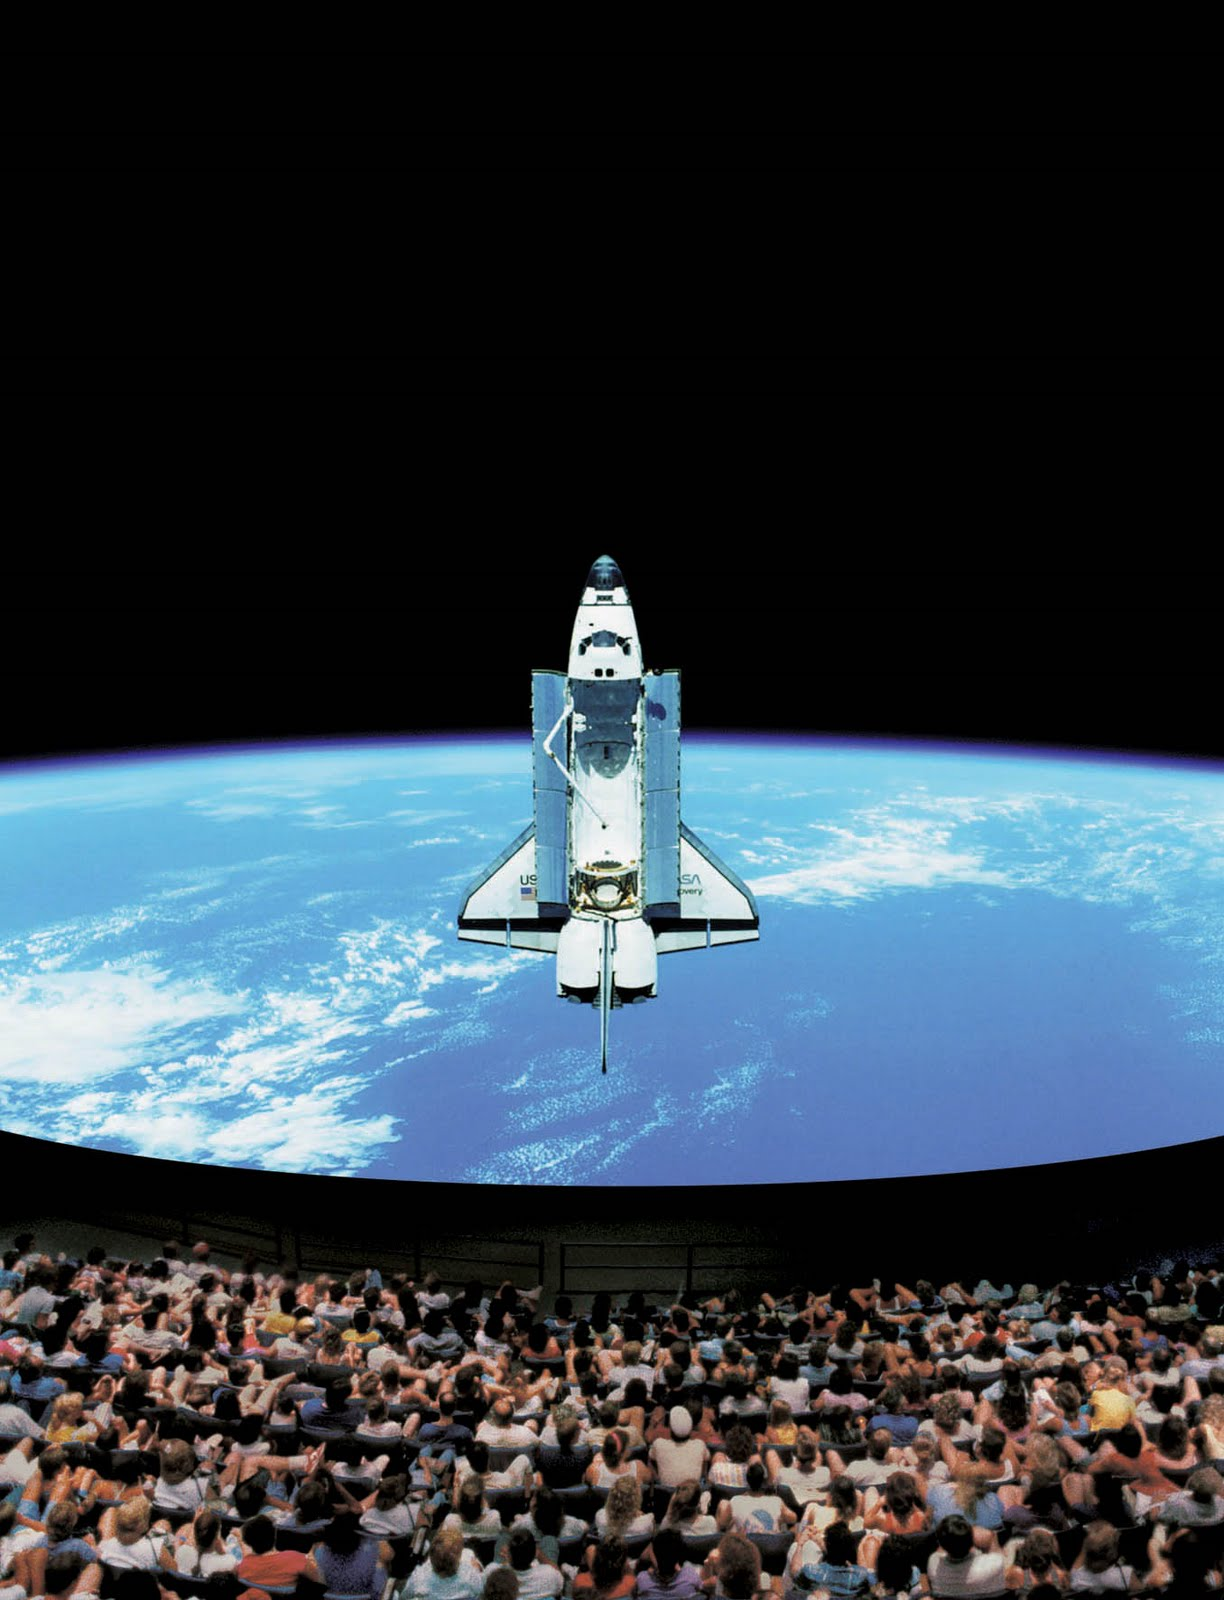 Http www space com common media video player php videoref hubble3d